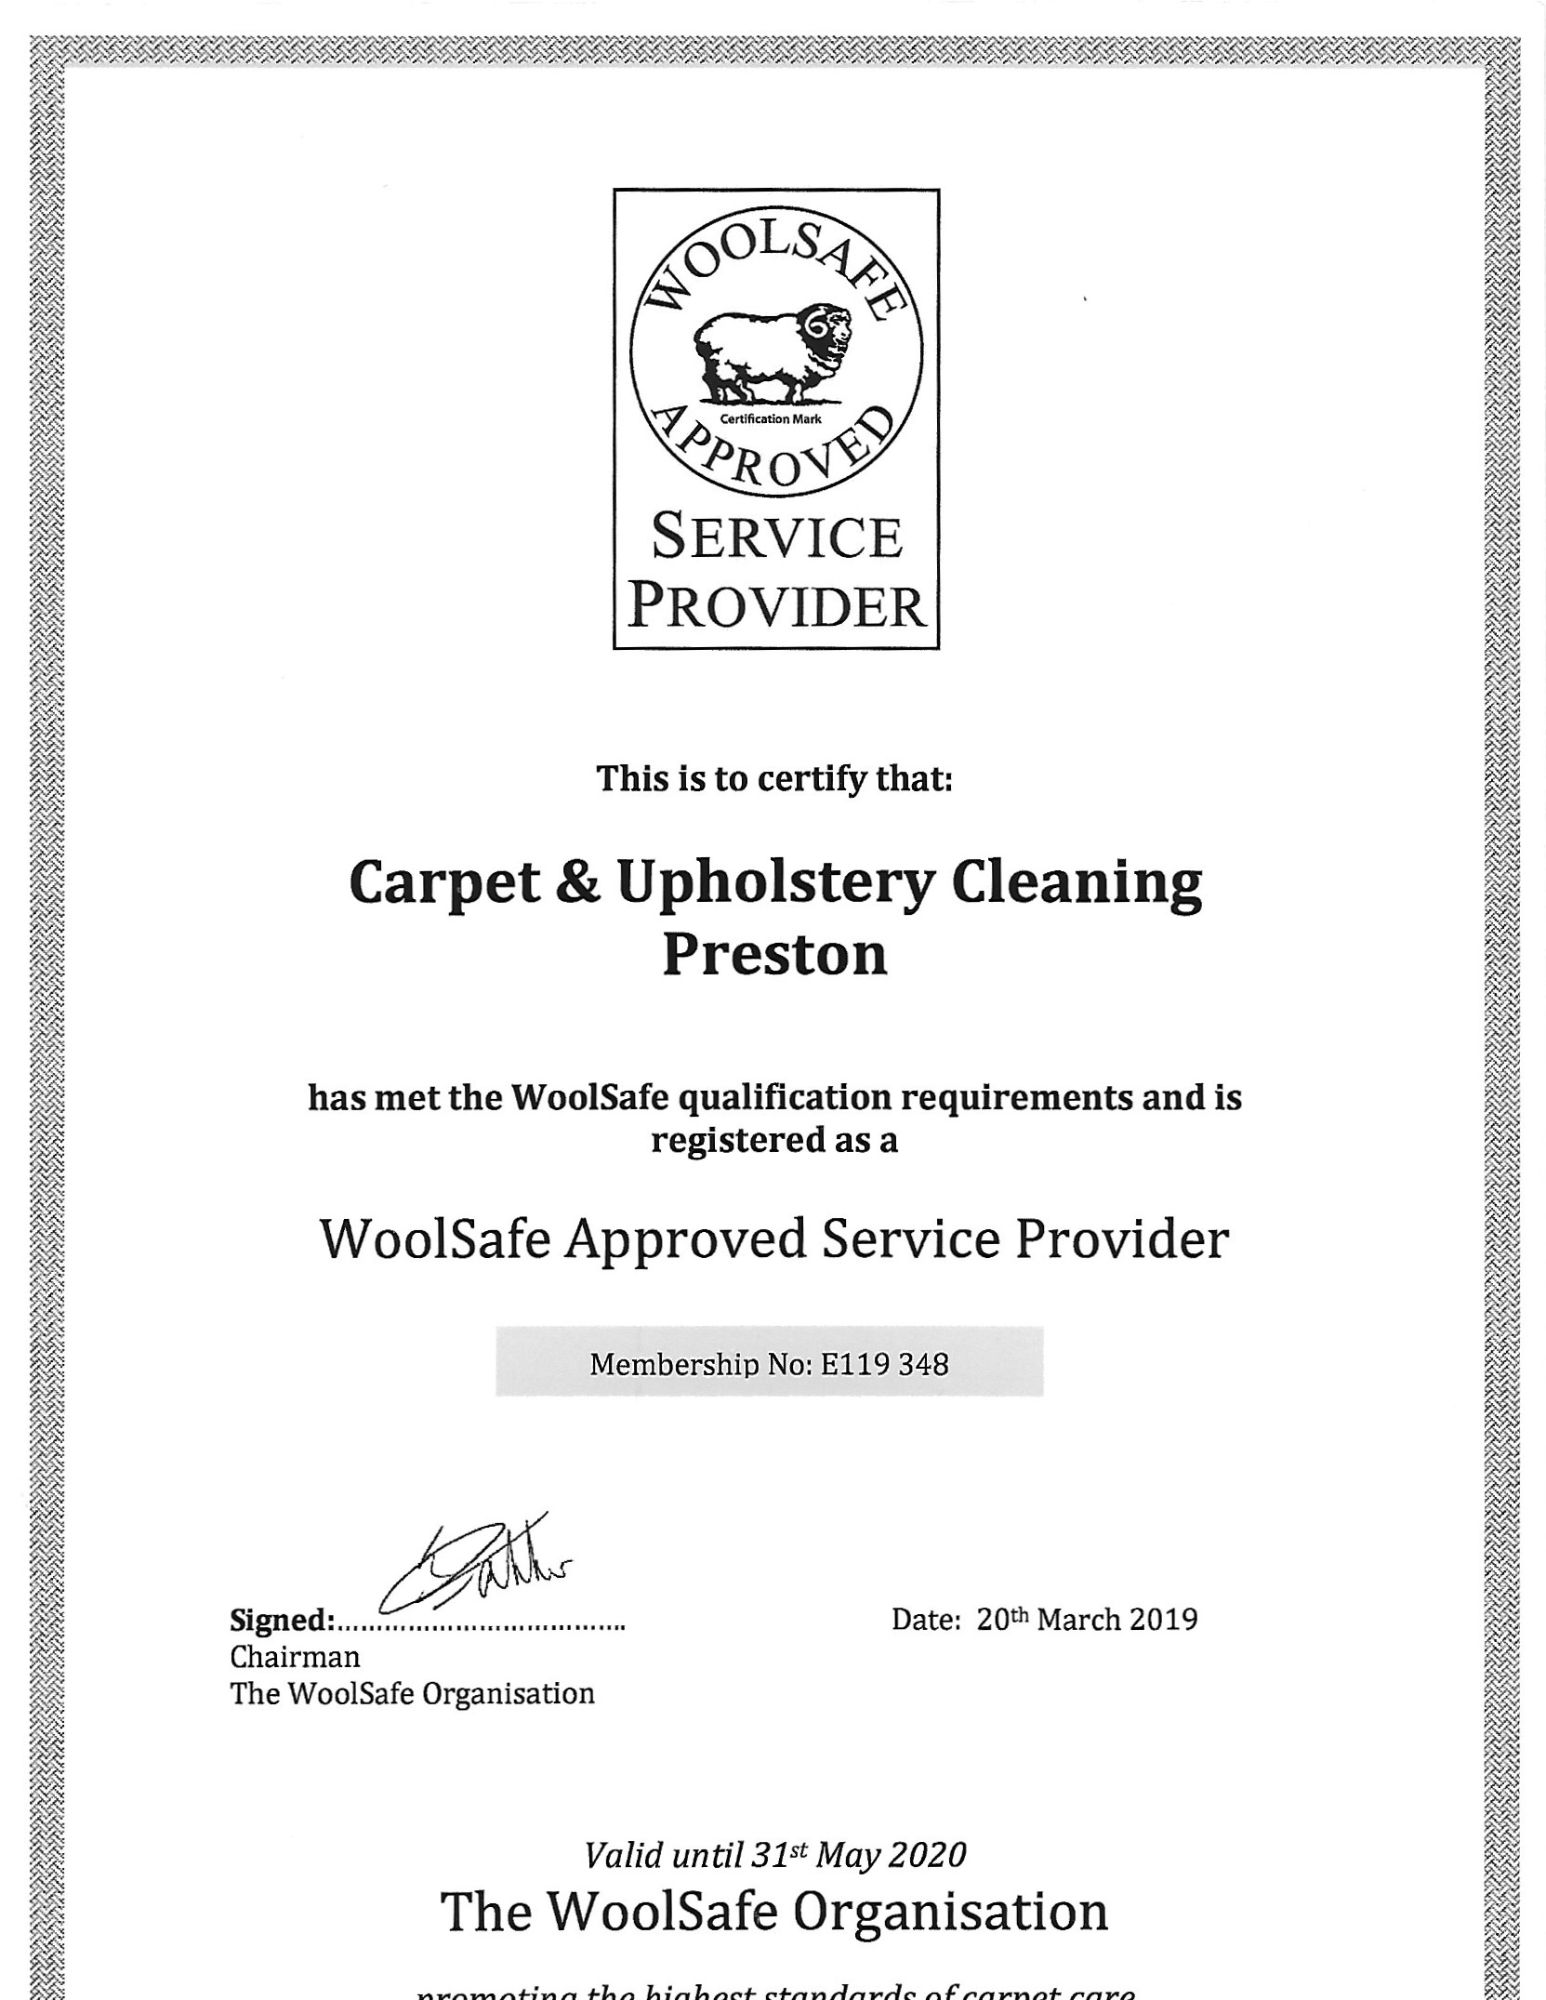 Woolsafe Service Provider certification Carpet & Upholstery Cleaning Lancashire